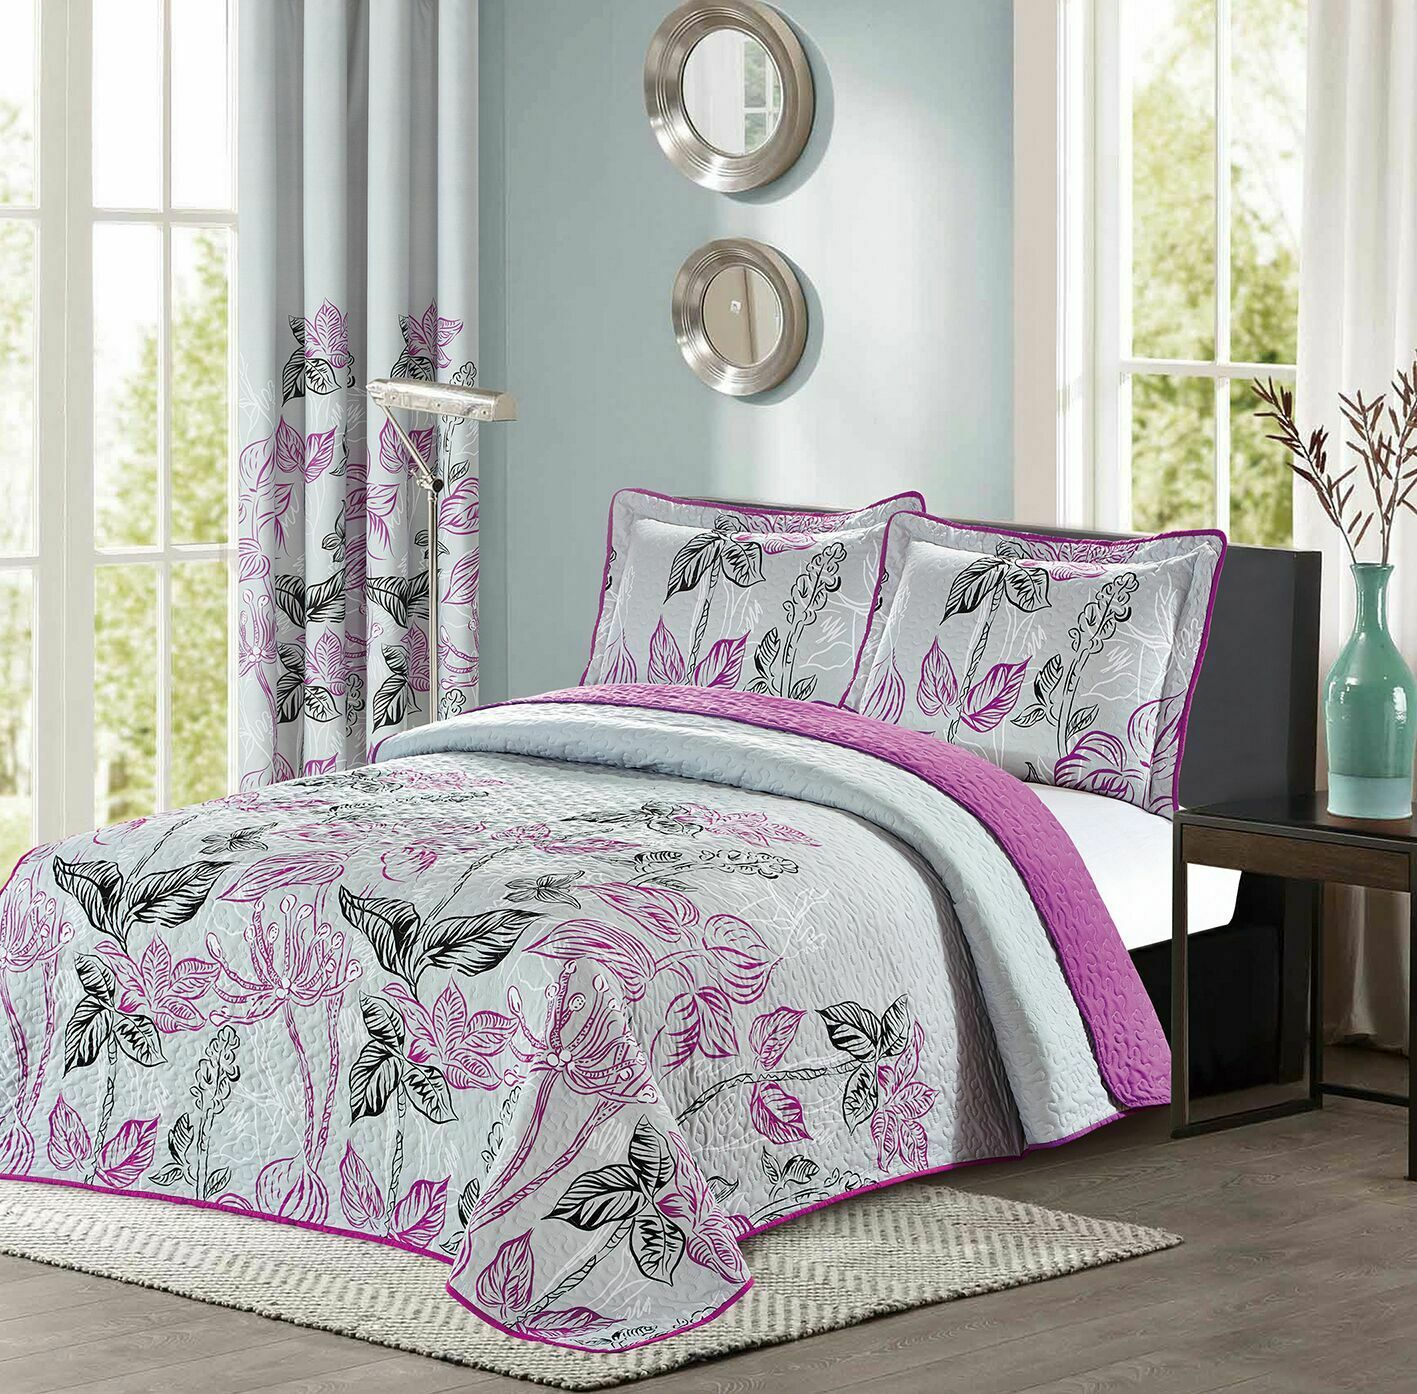 new reversible floral printed bedspread quilt